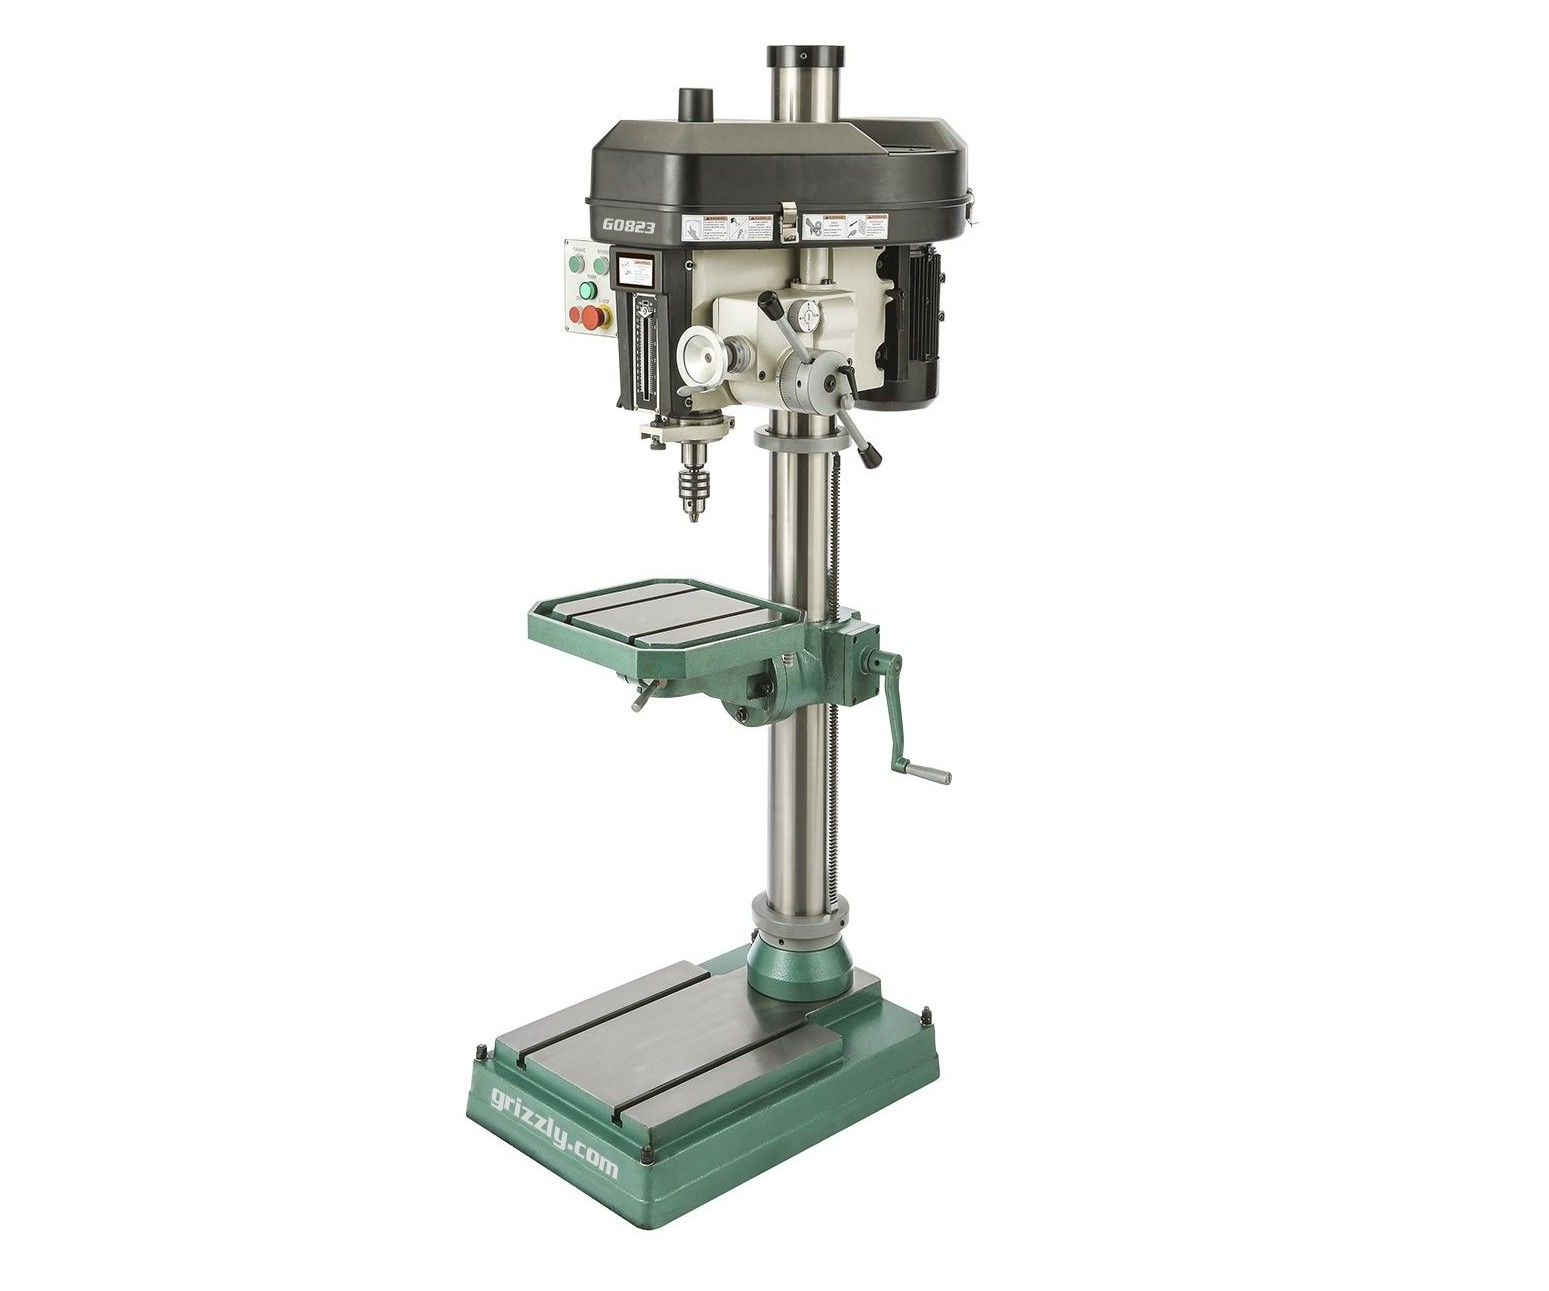 Grizzly G0823 drill press